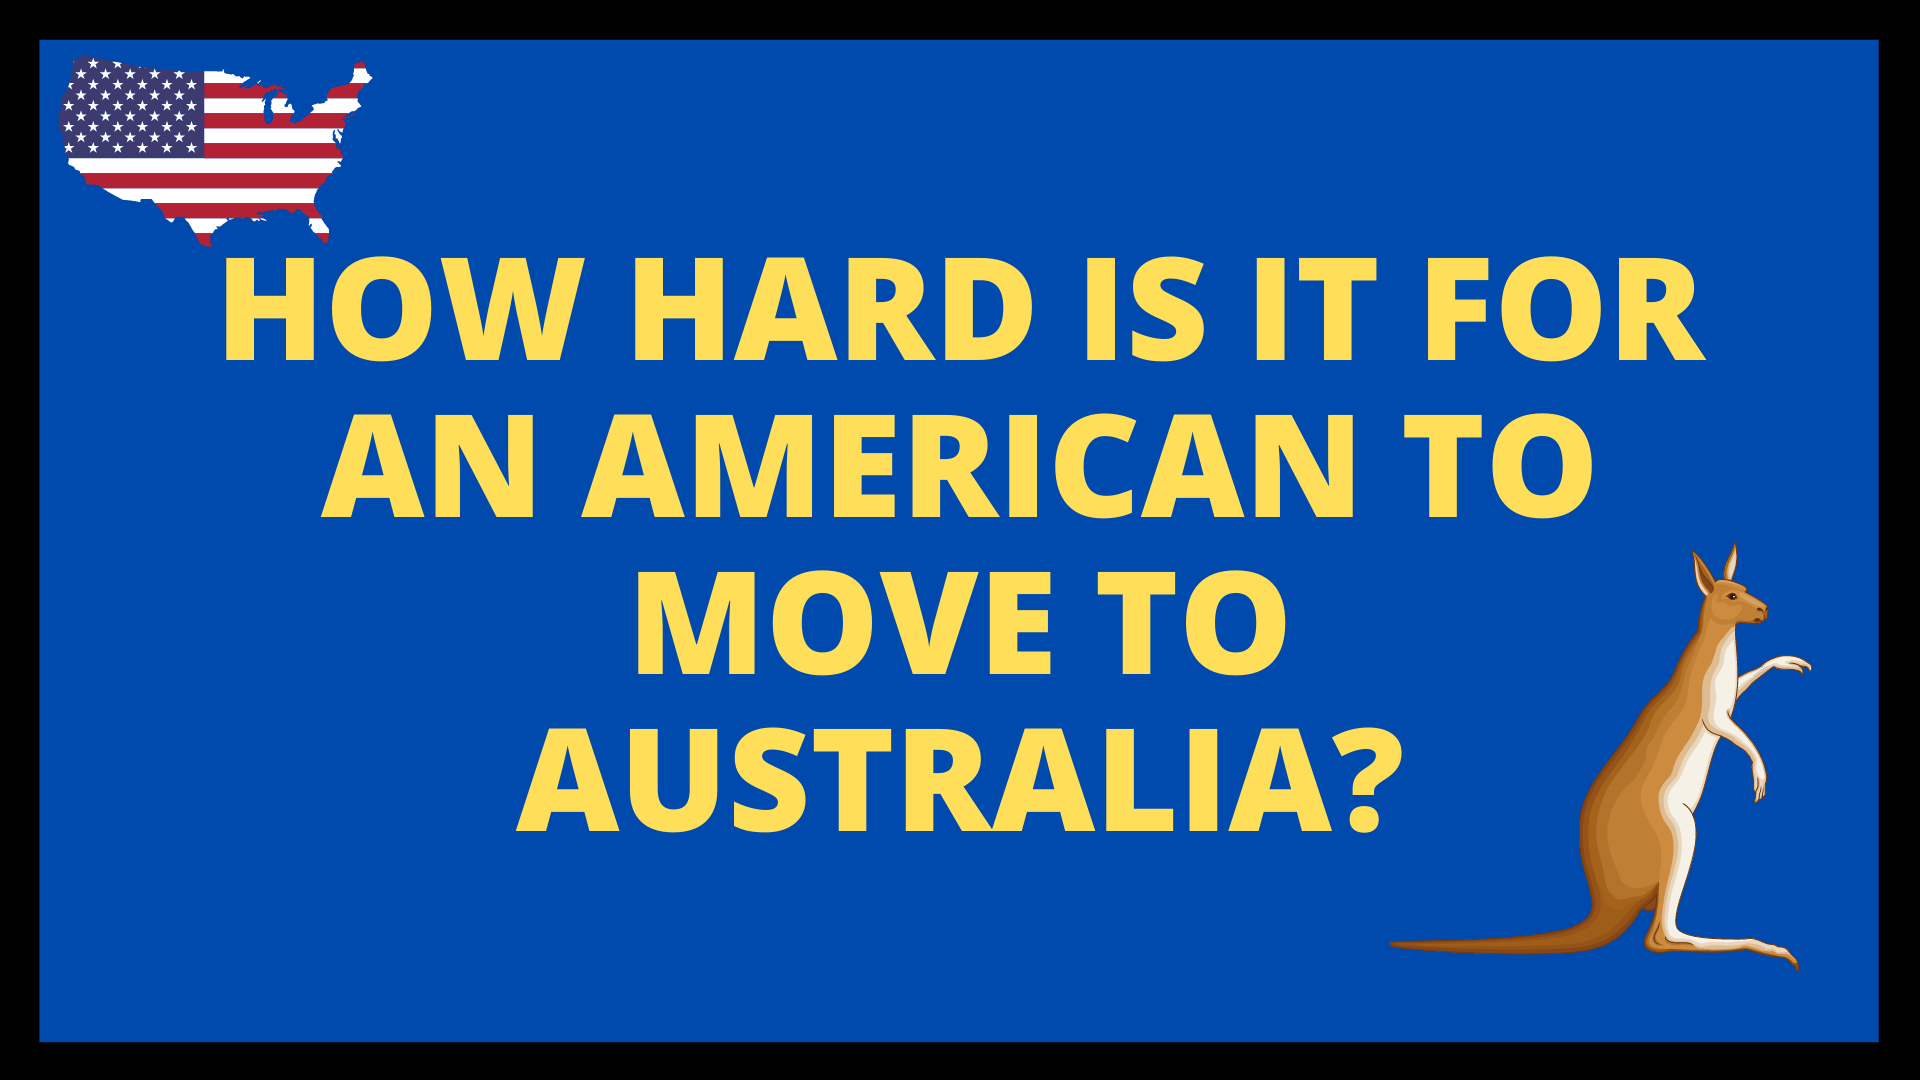 How Hard is it for an American to move to Australia?